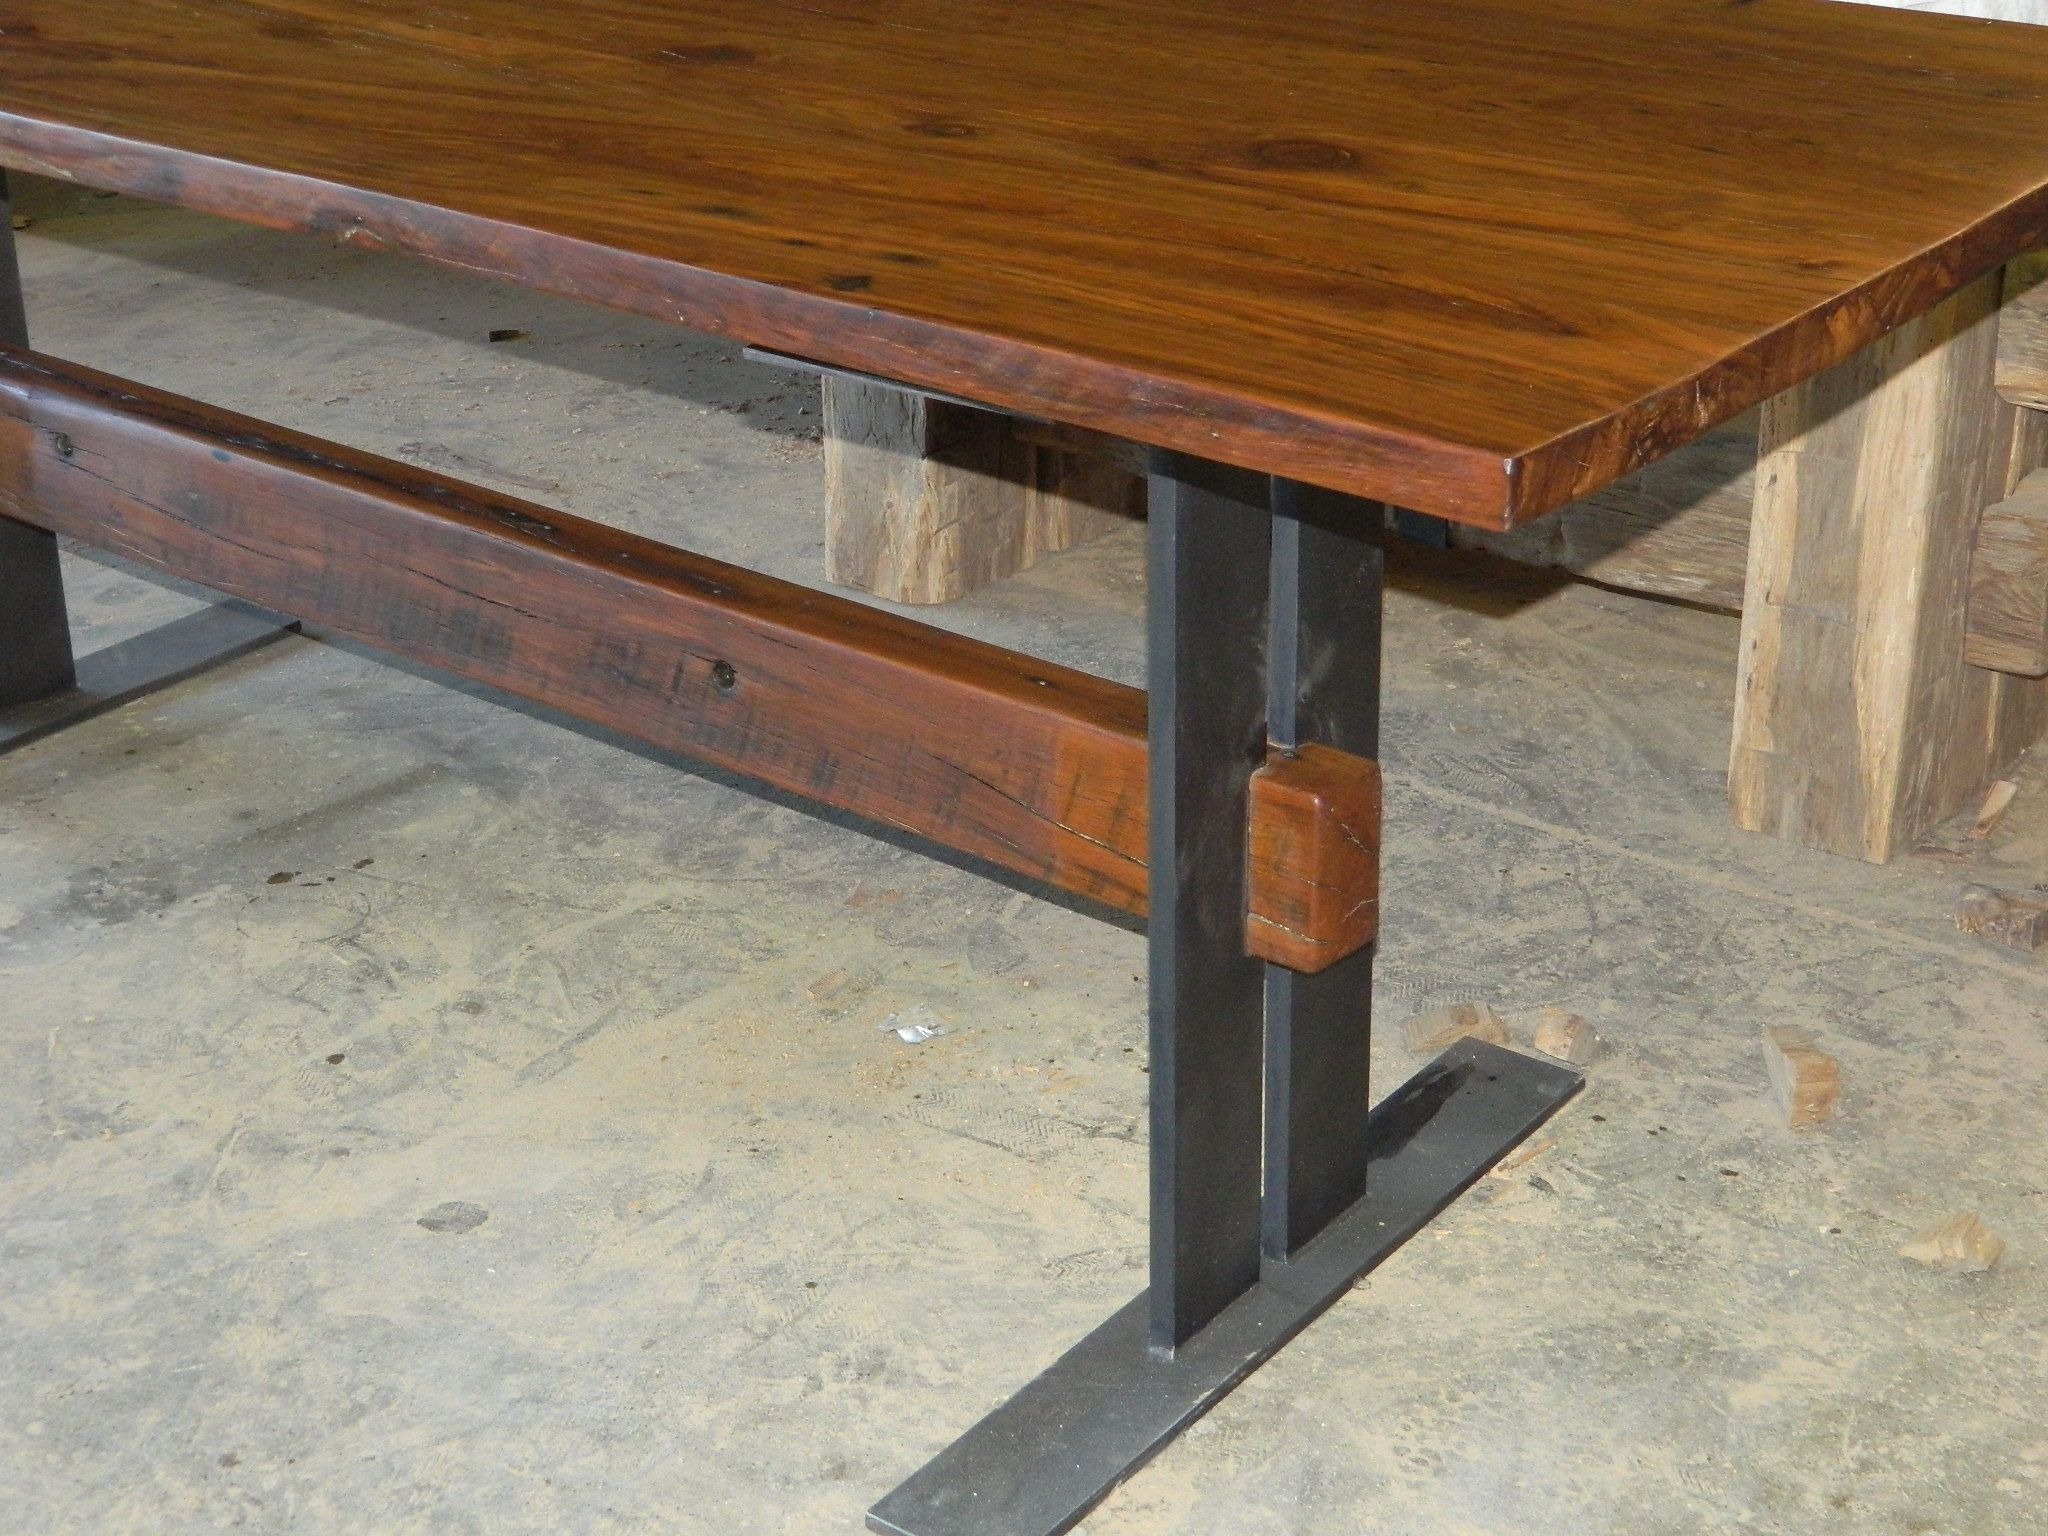 Hand Made Reclaimed Wood Table With Flat Iron Base by Antique